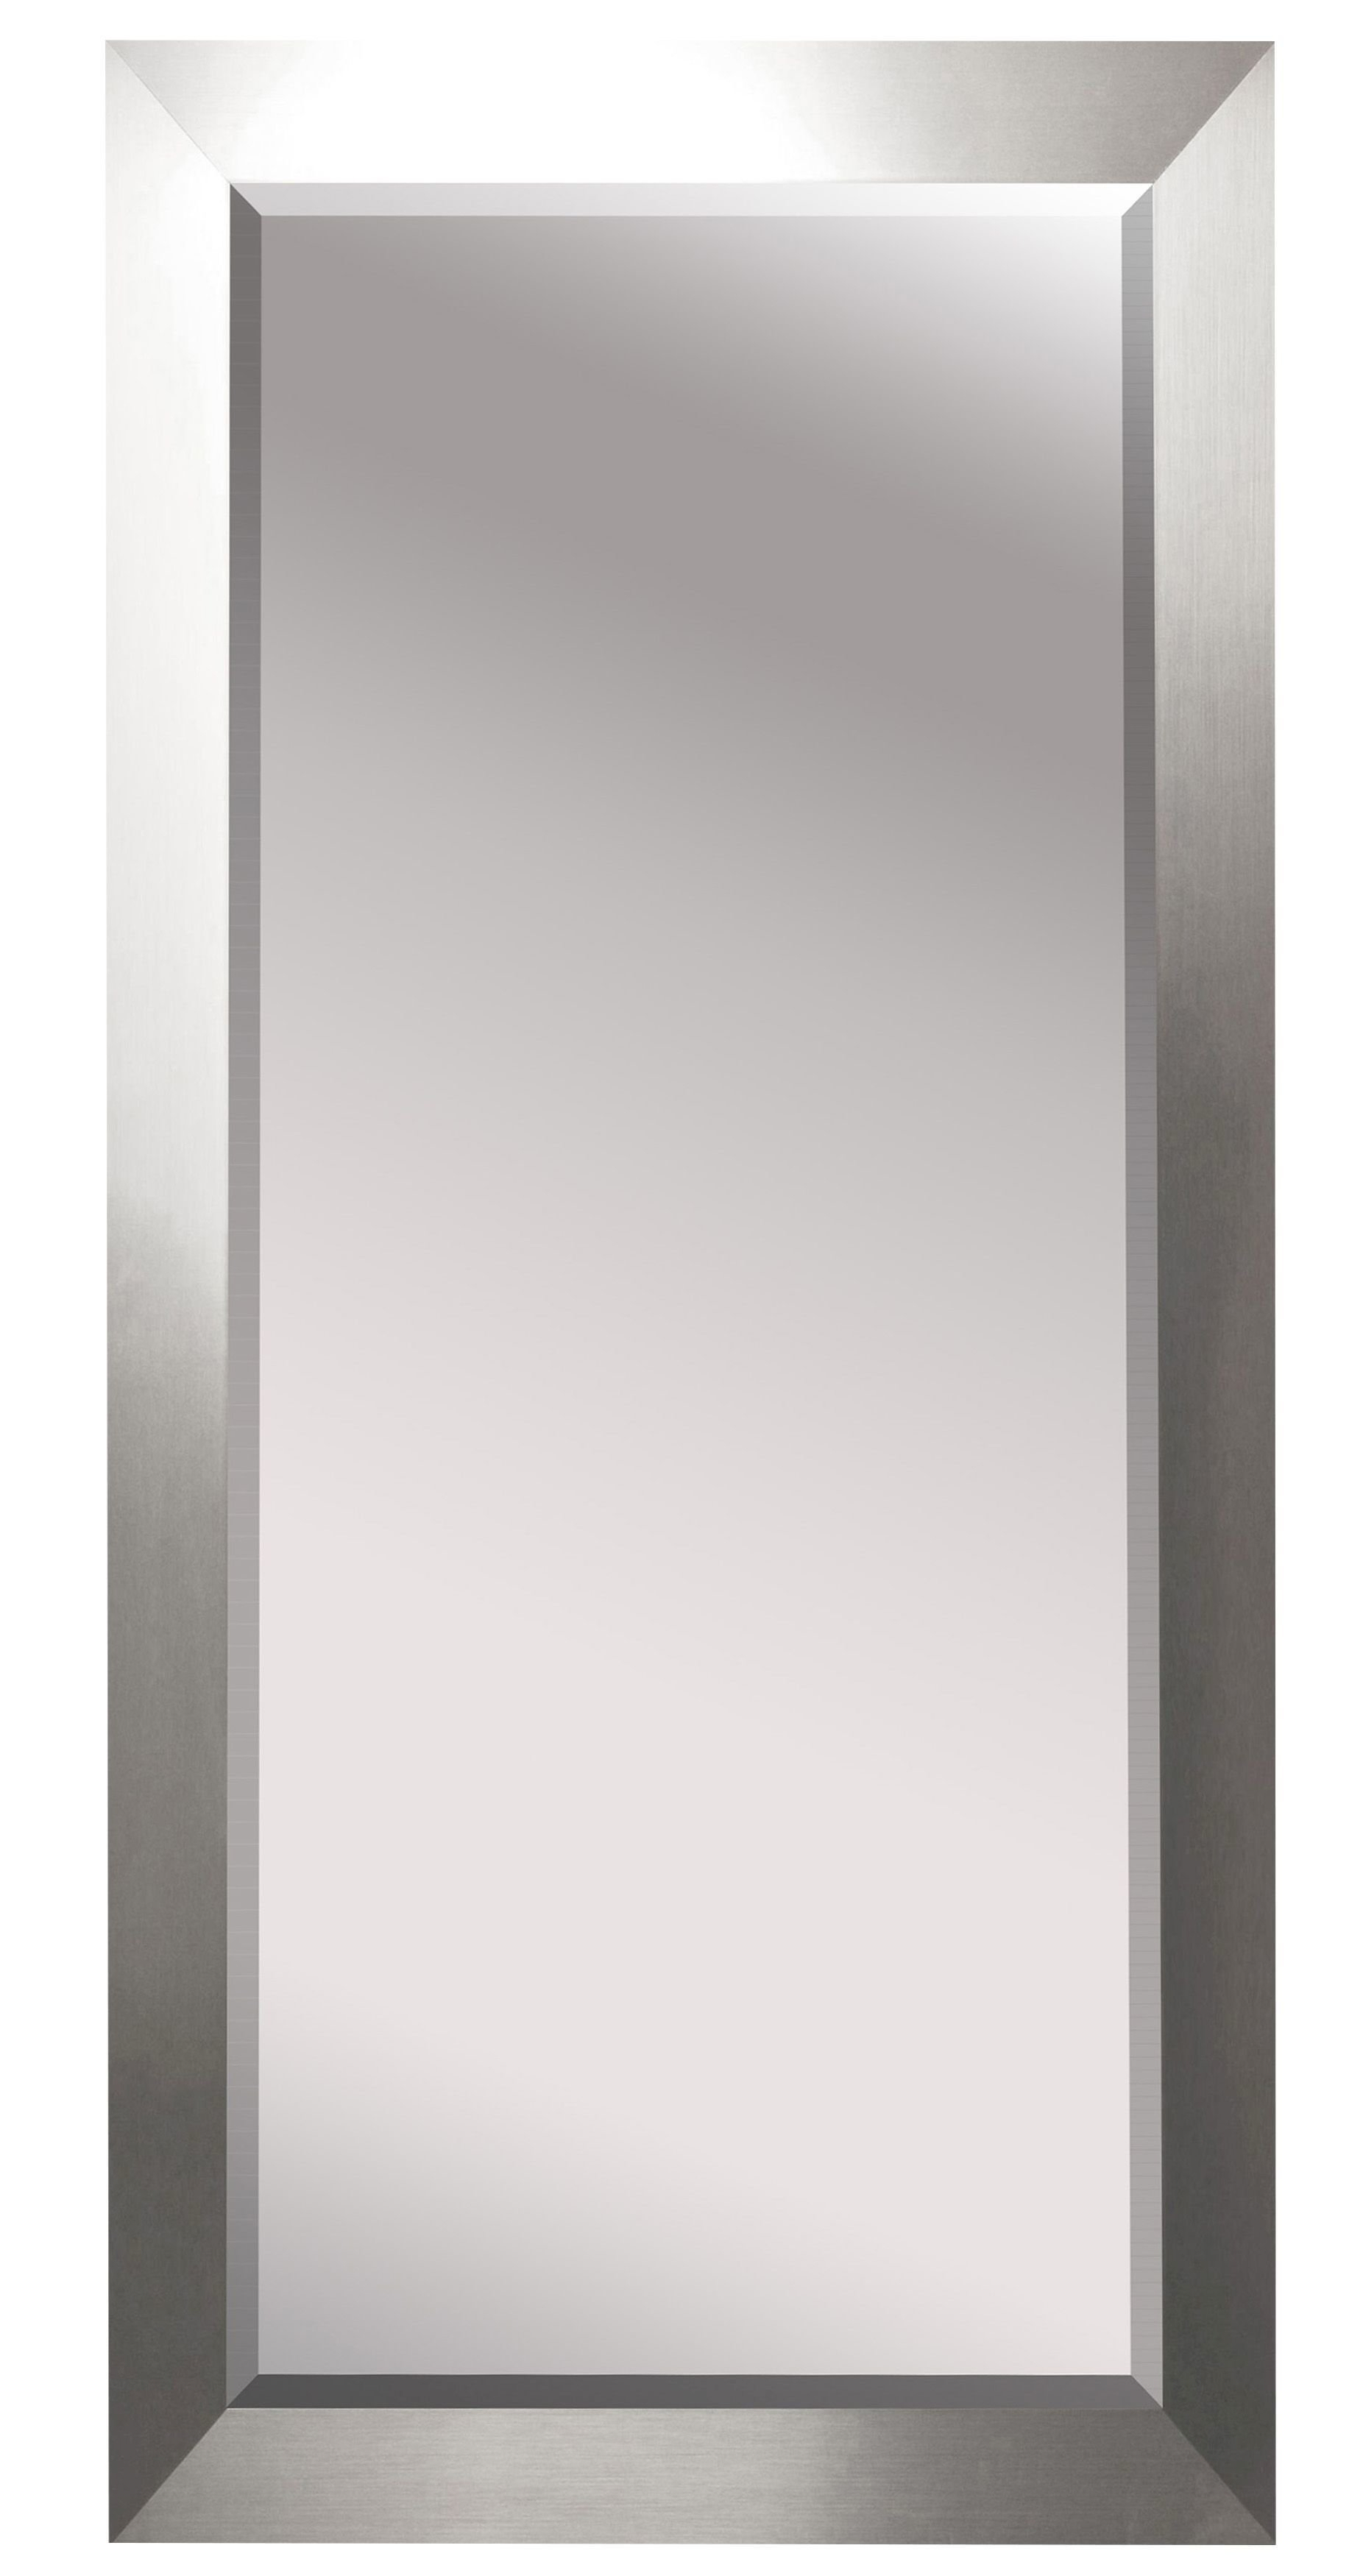 Bernice Beveled Silver Wall Full Length Mirror For Sartain Modern & Contemporary Wall Mirrors (View 14 of 20)